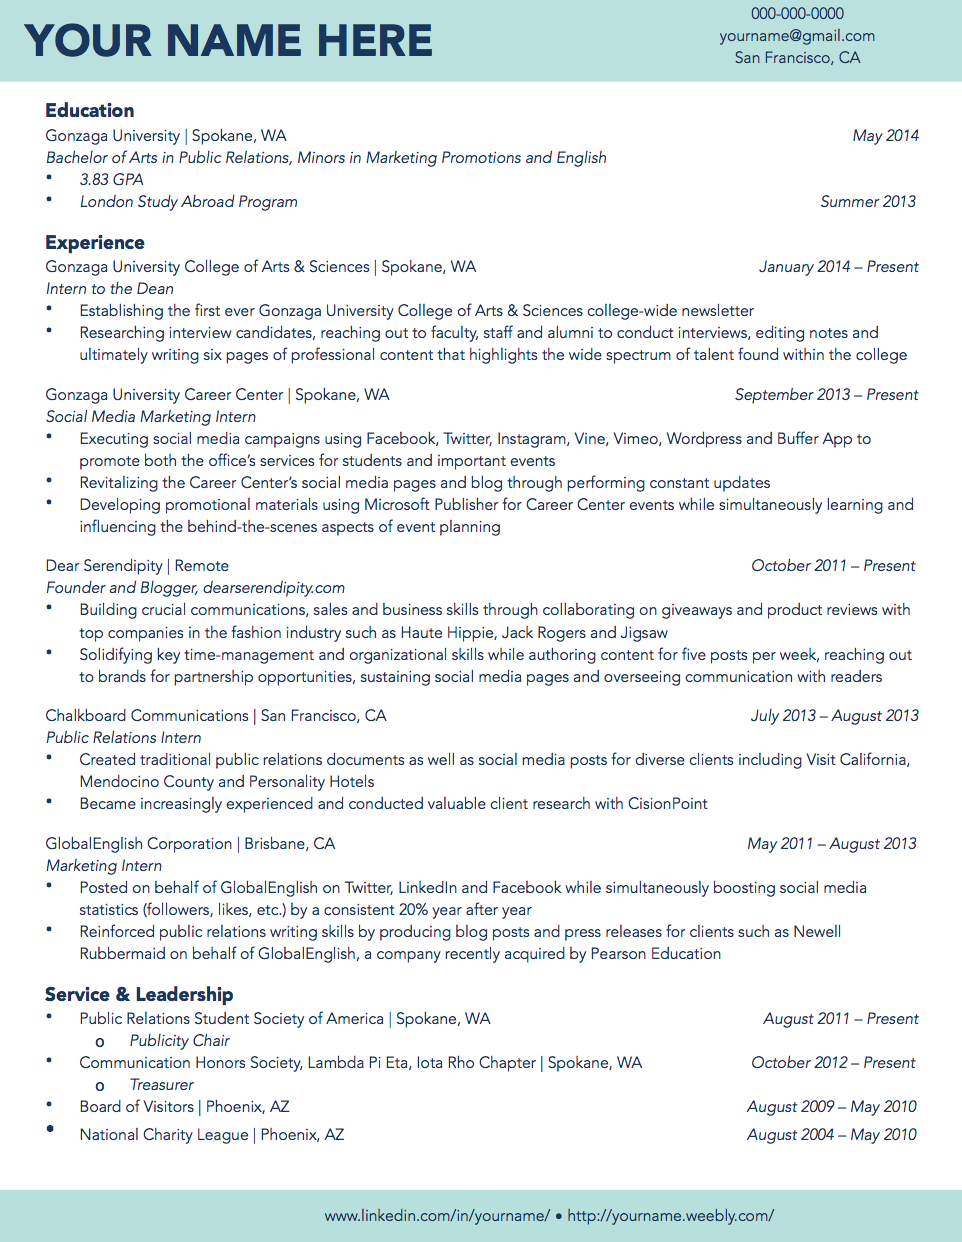 Gonzaga University Sample Student Résumé | Résumé Samples ...